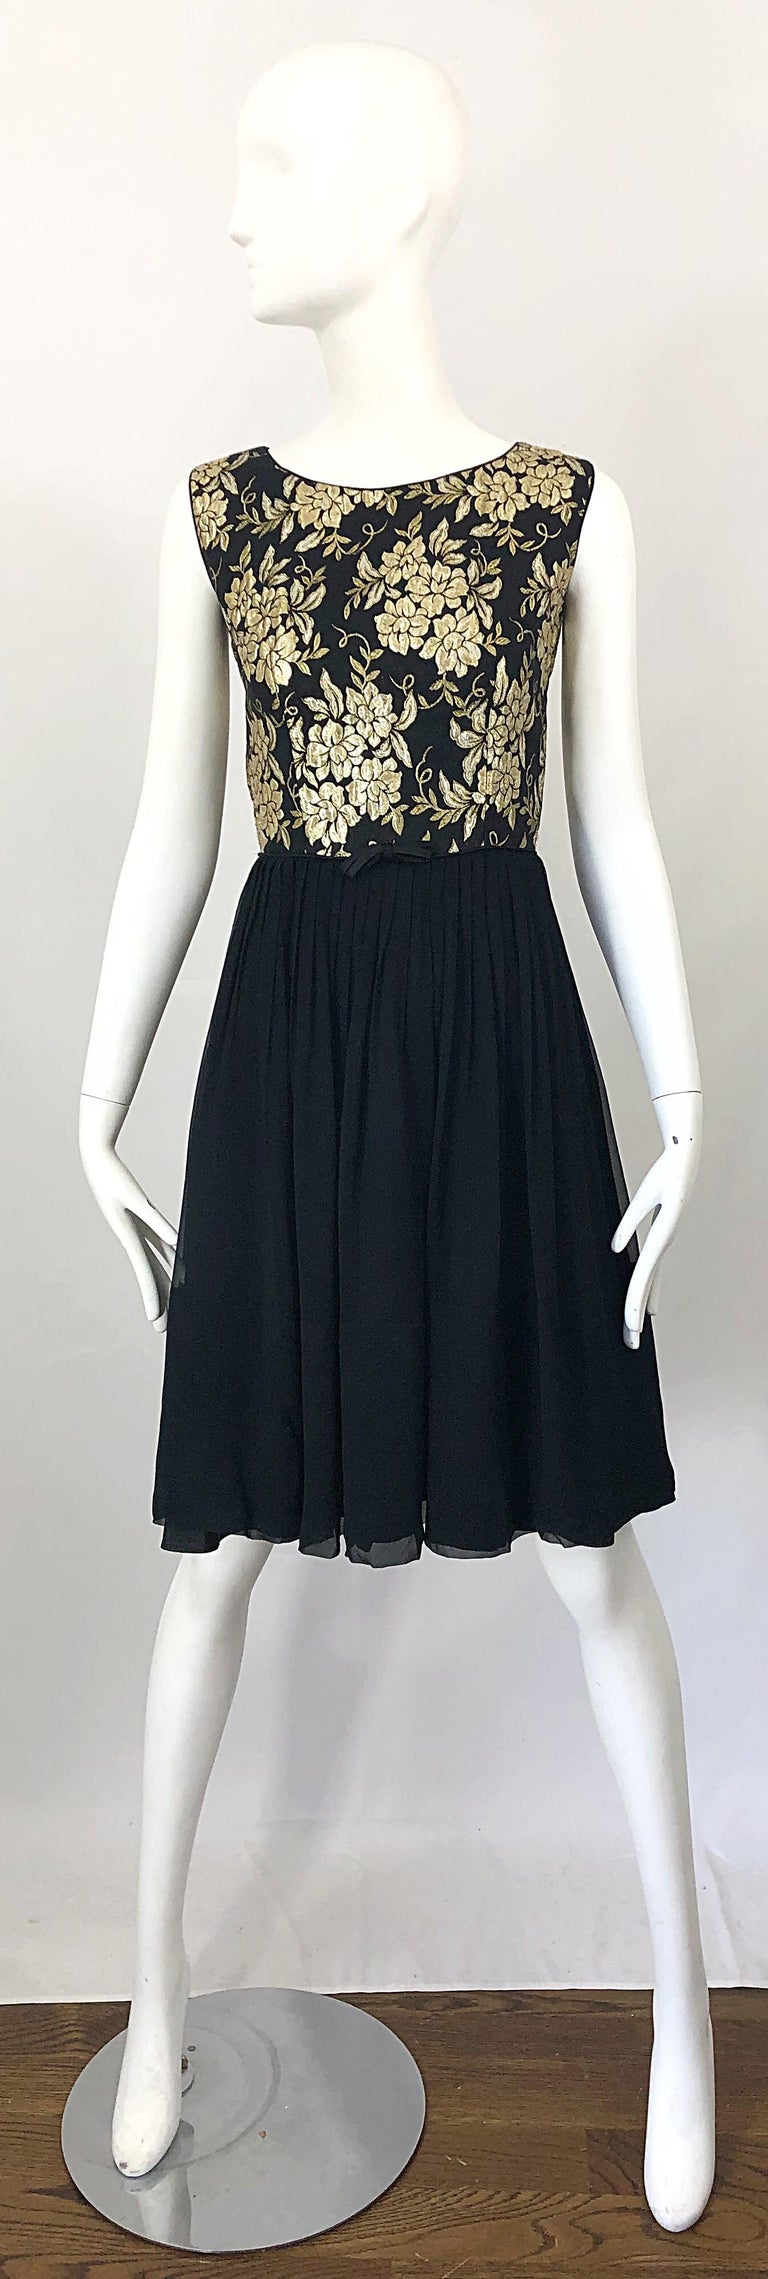 1950s Demi Couture Gold + Black Silk Brocade and Chiffon Vintage 50s Dress For Sale 9